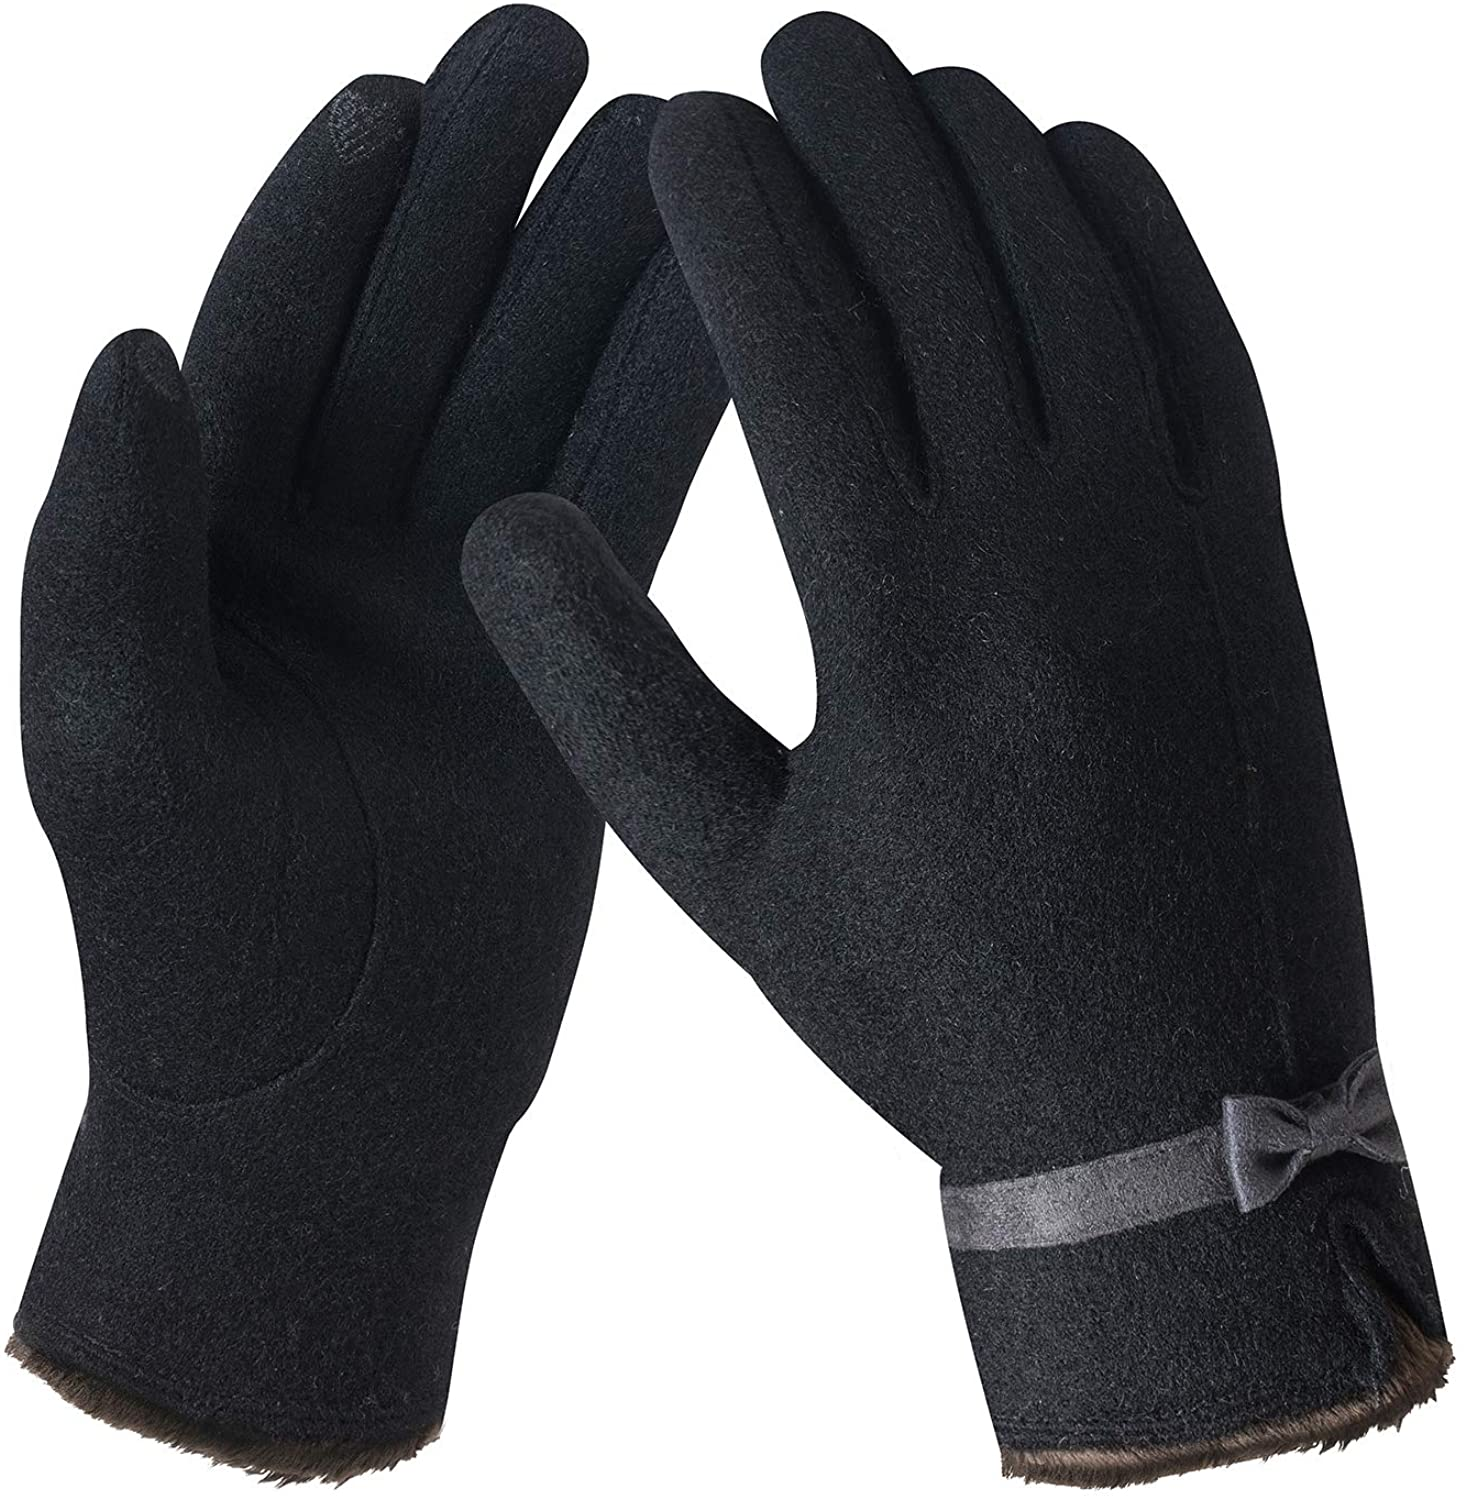 Womens Winter Touch Screen Knit Gloves Thick Warm Wool Gloves for Women